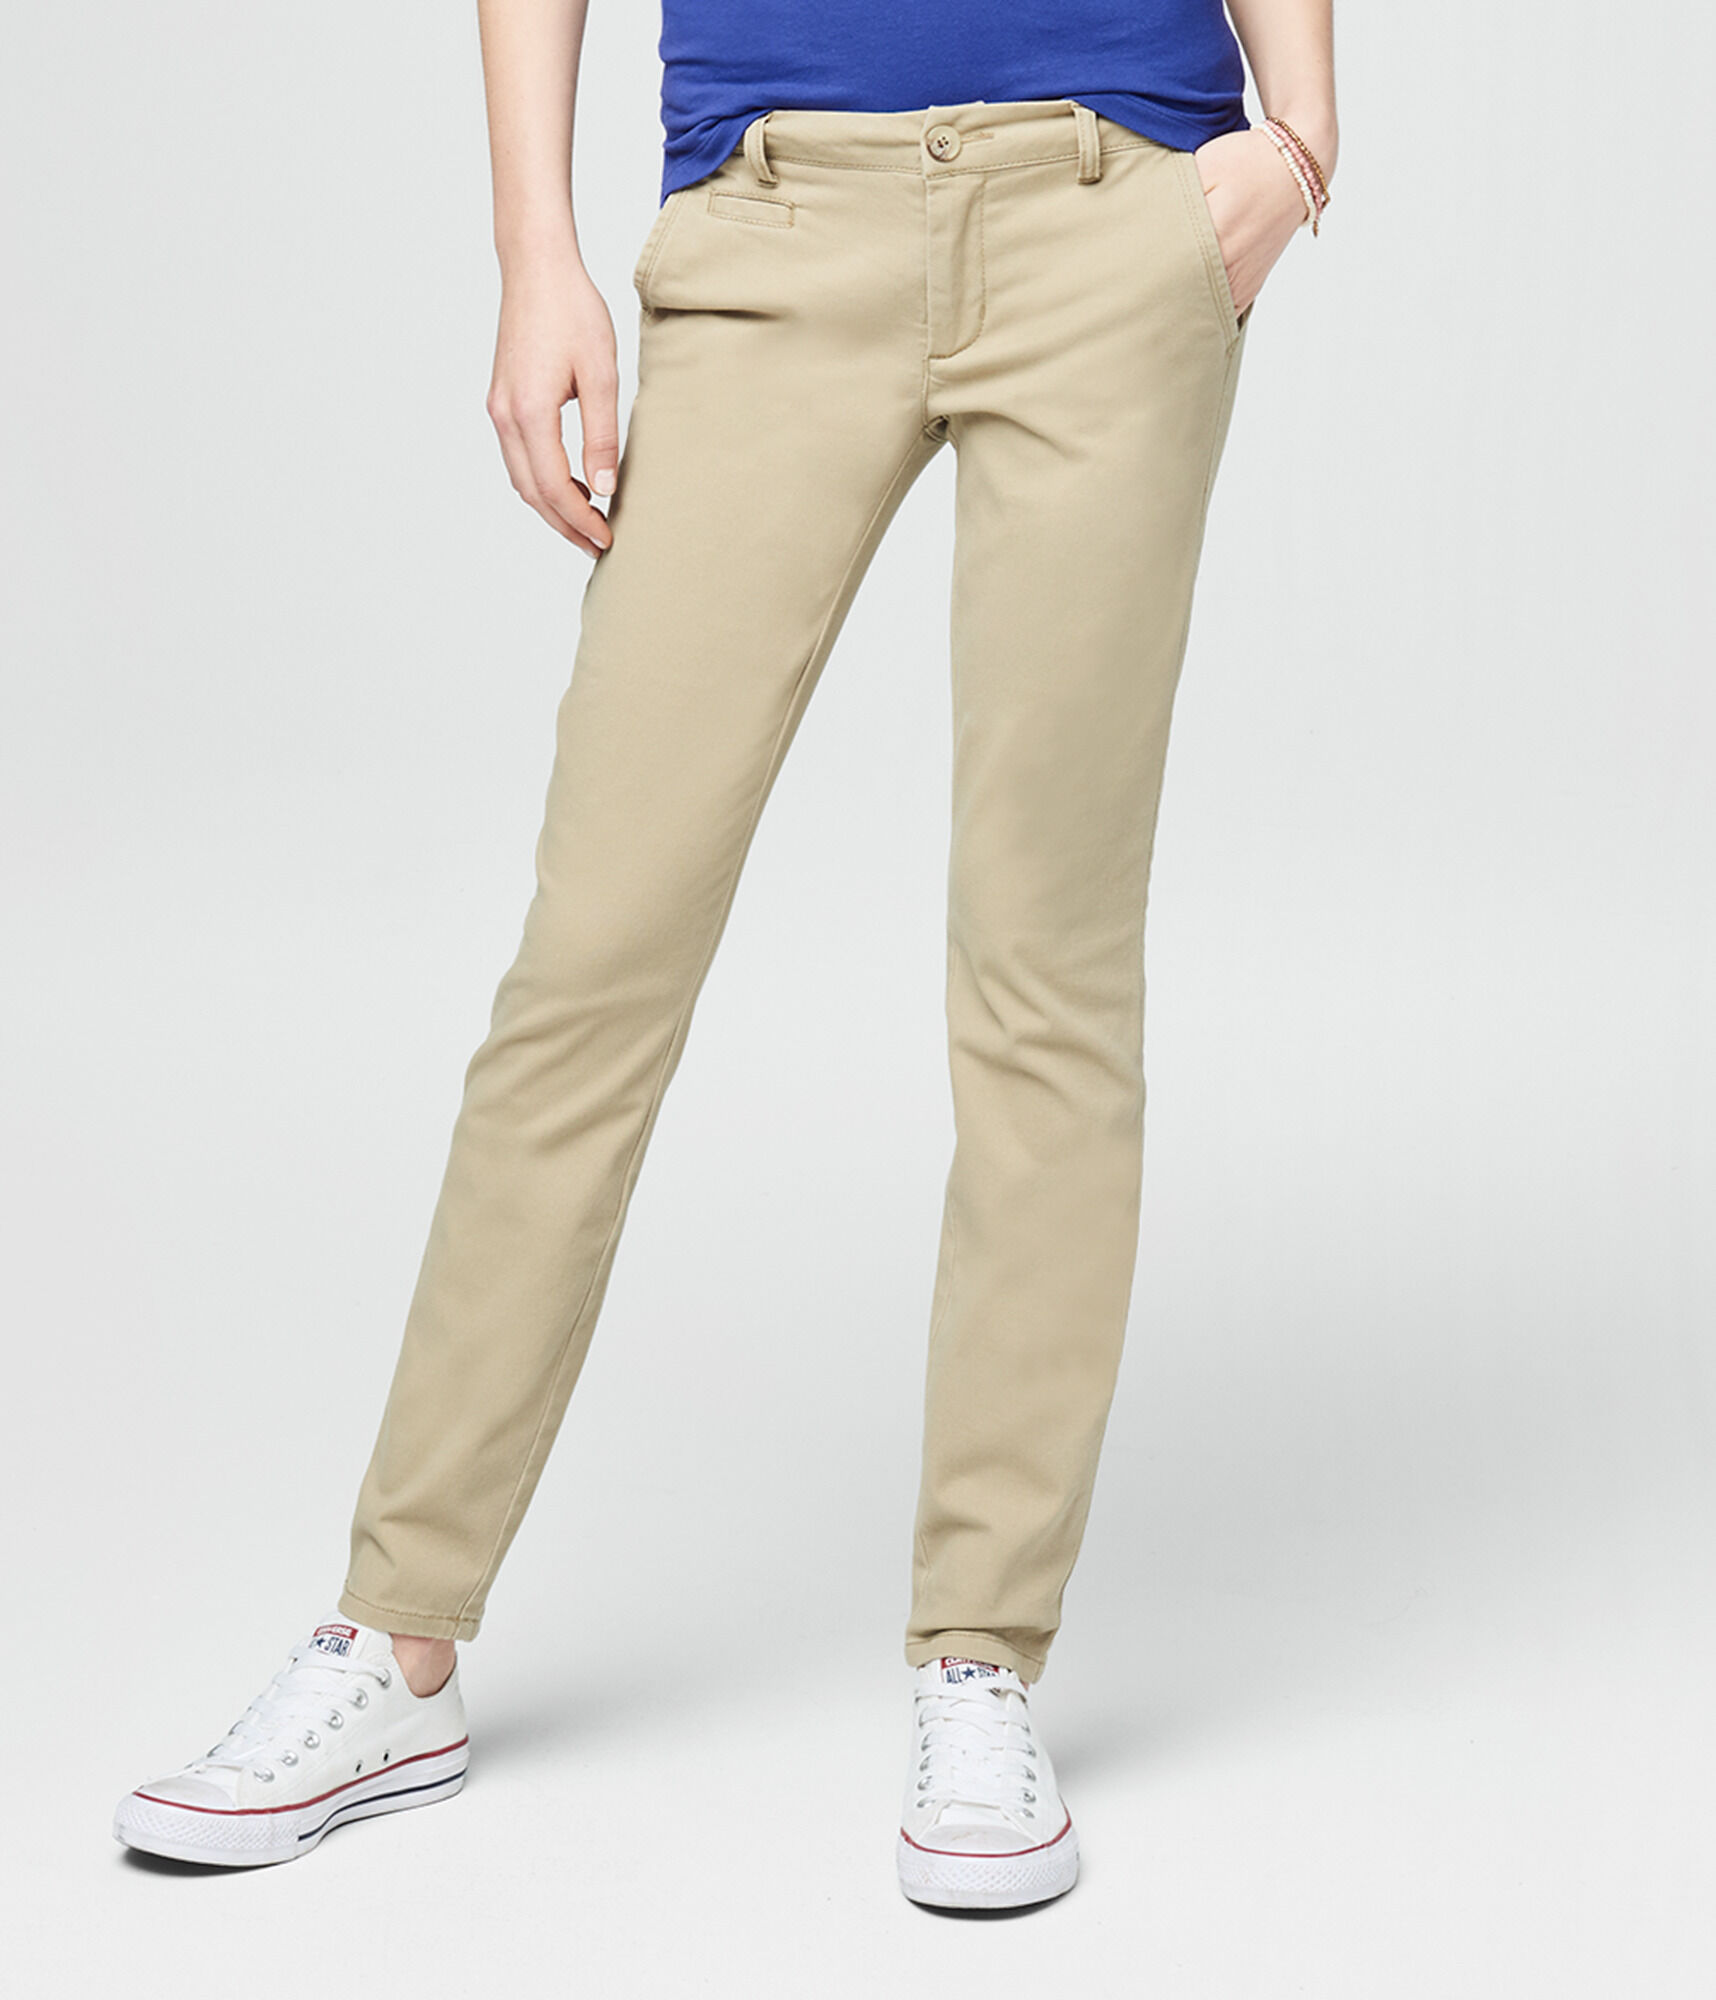 Put together the perfect outfit with our collection of Men's Khakis and Pants in a variety of fits and styles at American Eagle Outfitters. AE Ne(X)t Level Skinny Khaki Pant Regular Price $ Sale Price $ Launch product quickview. removed! New Online Only AE Ne(X)t Level Skinny Khaki Pant.